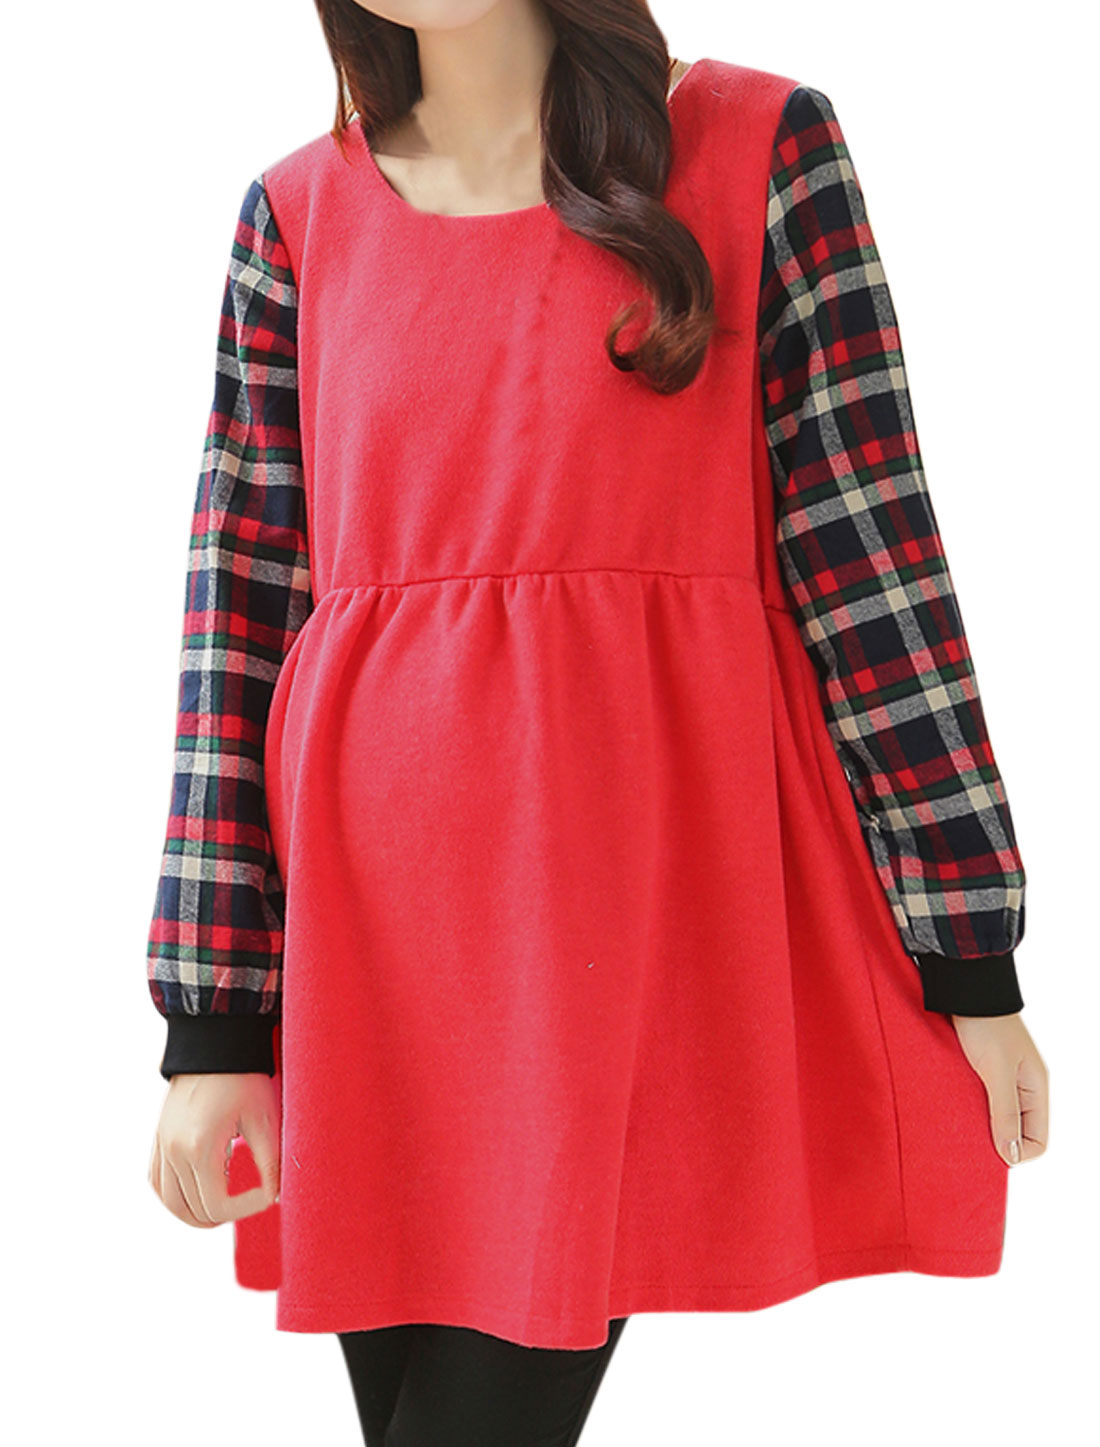 Maternity Round Neck Long Sleeves Panel Watermelon Red Dress L